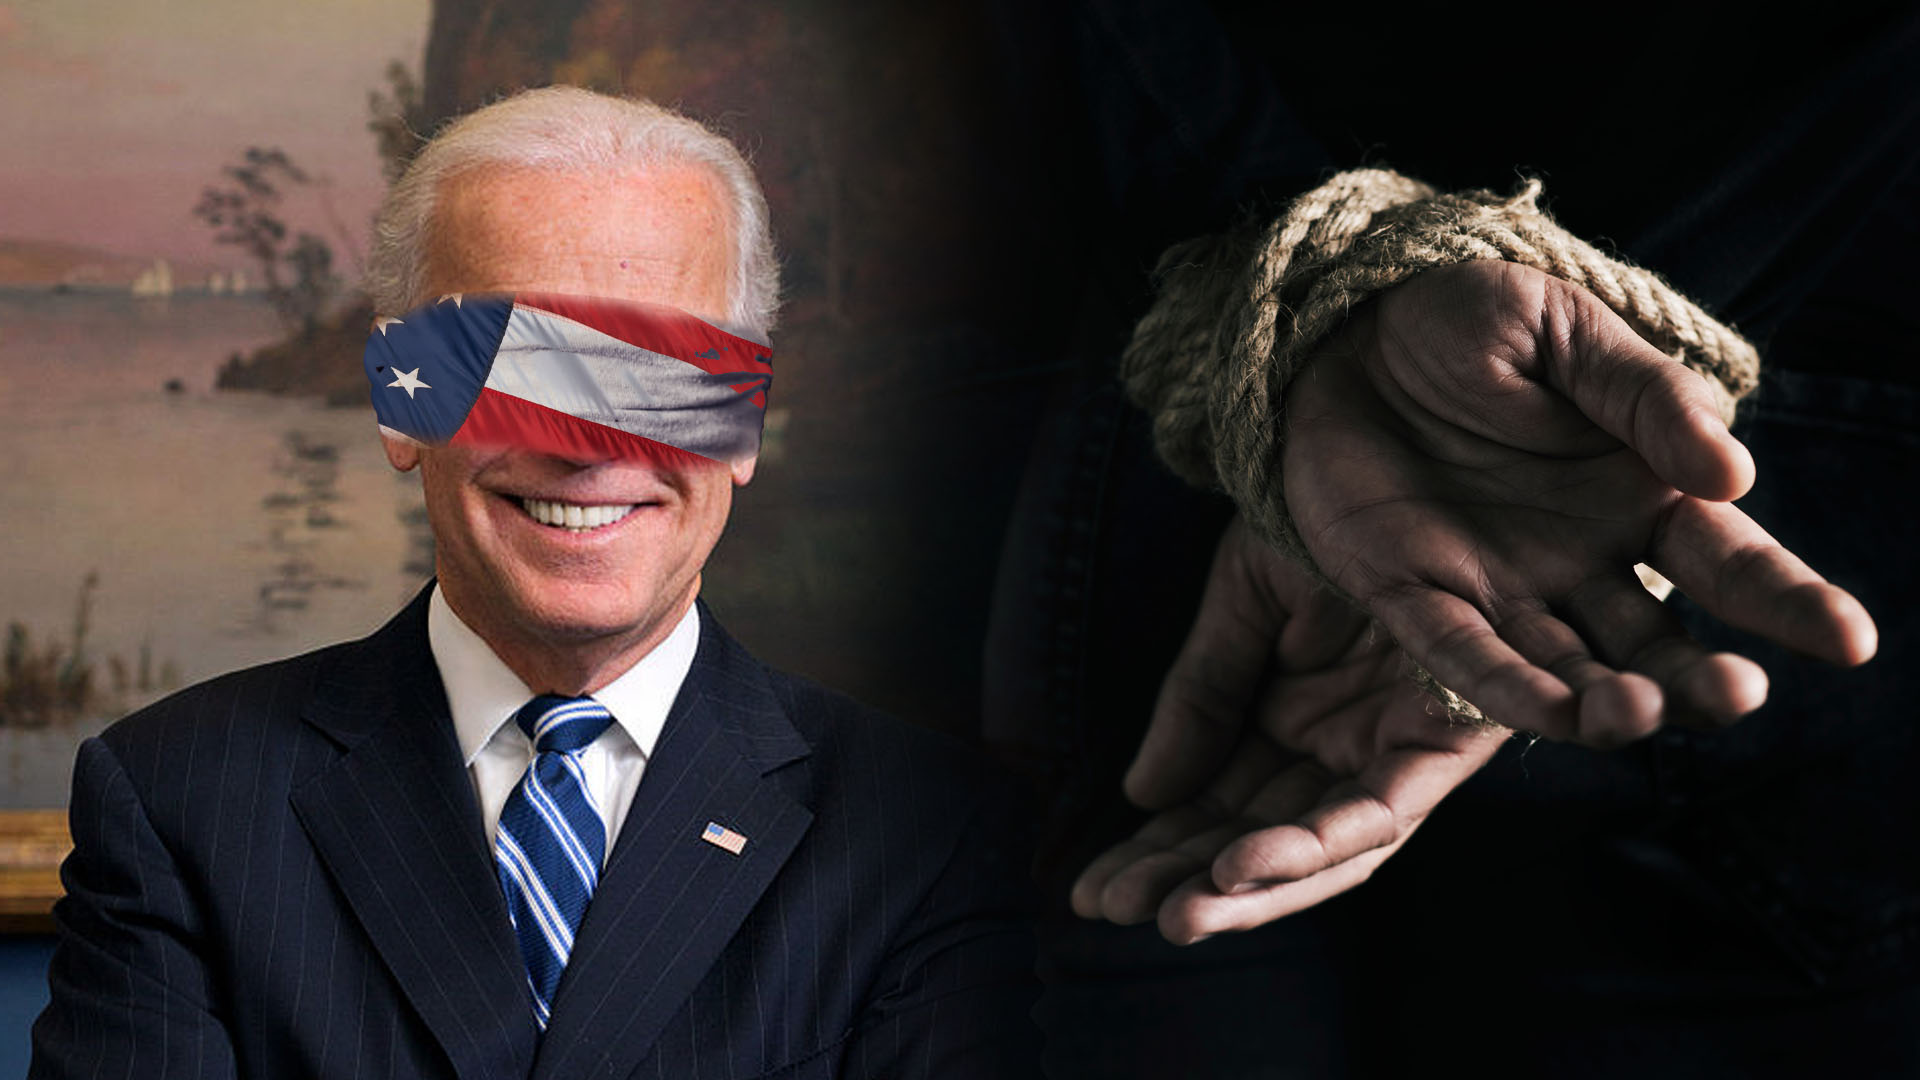 Joe Biden American Flag Blindfolded Hands Tied with Rope